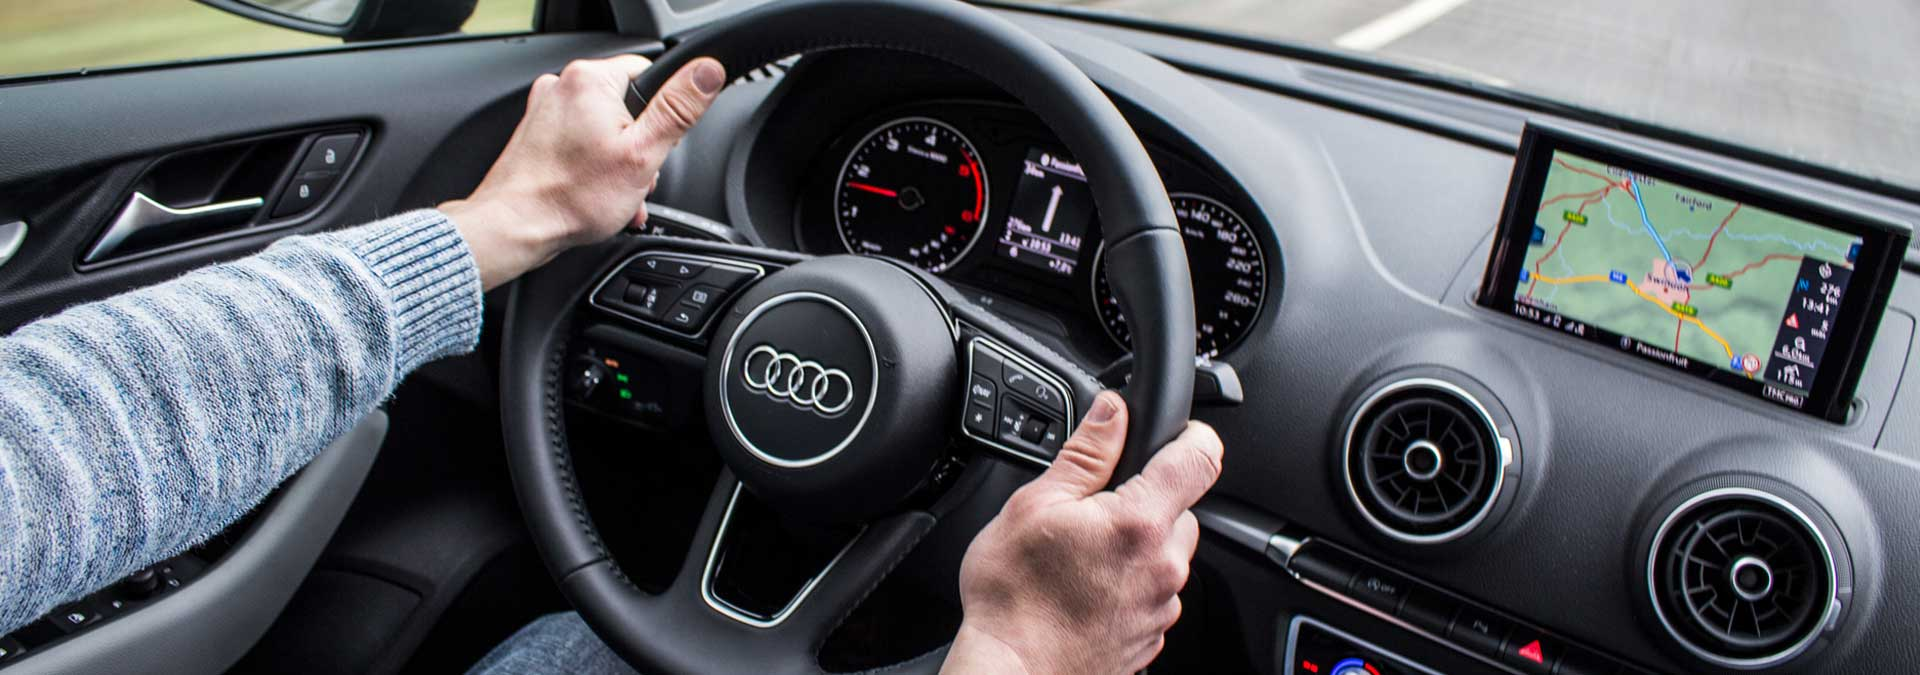 mature driver driving an Audi equipped with GPS